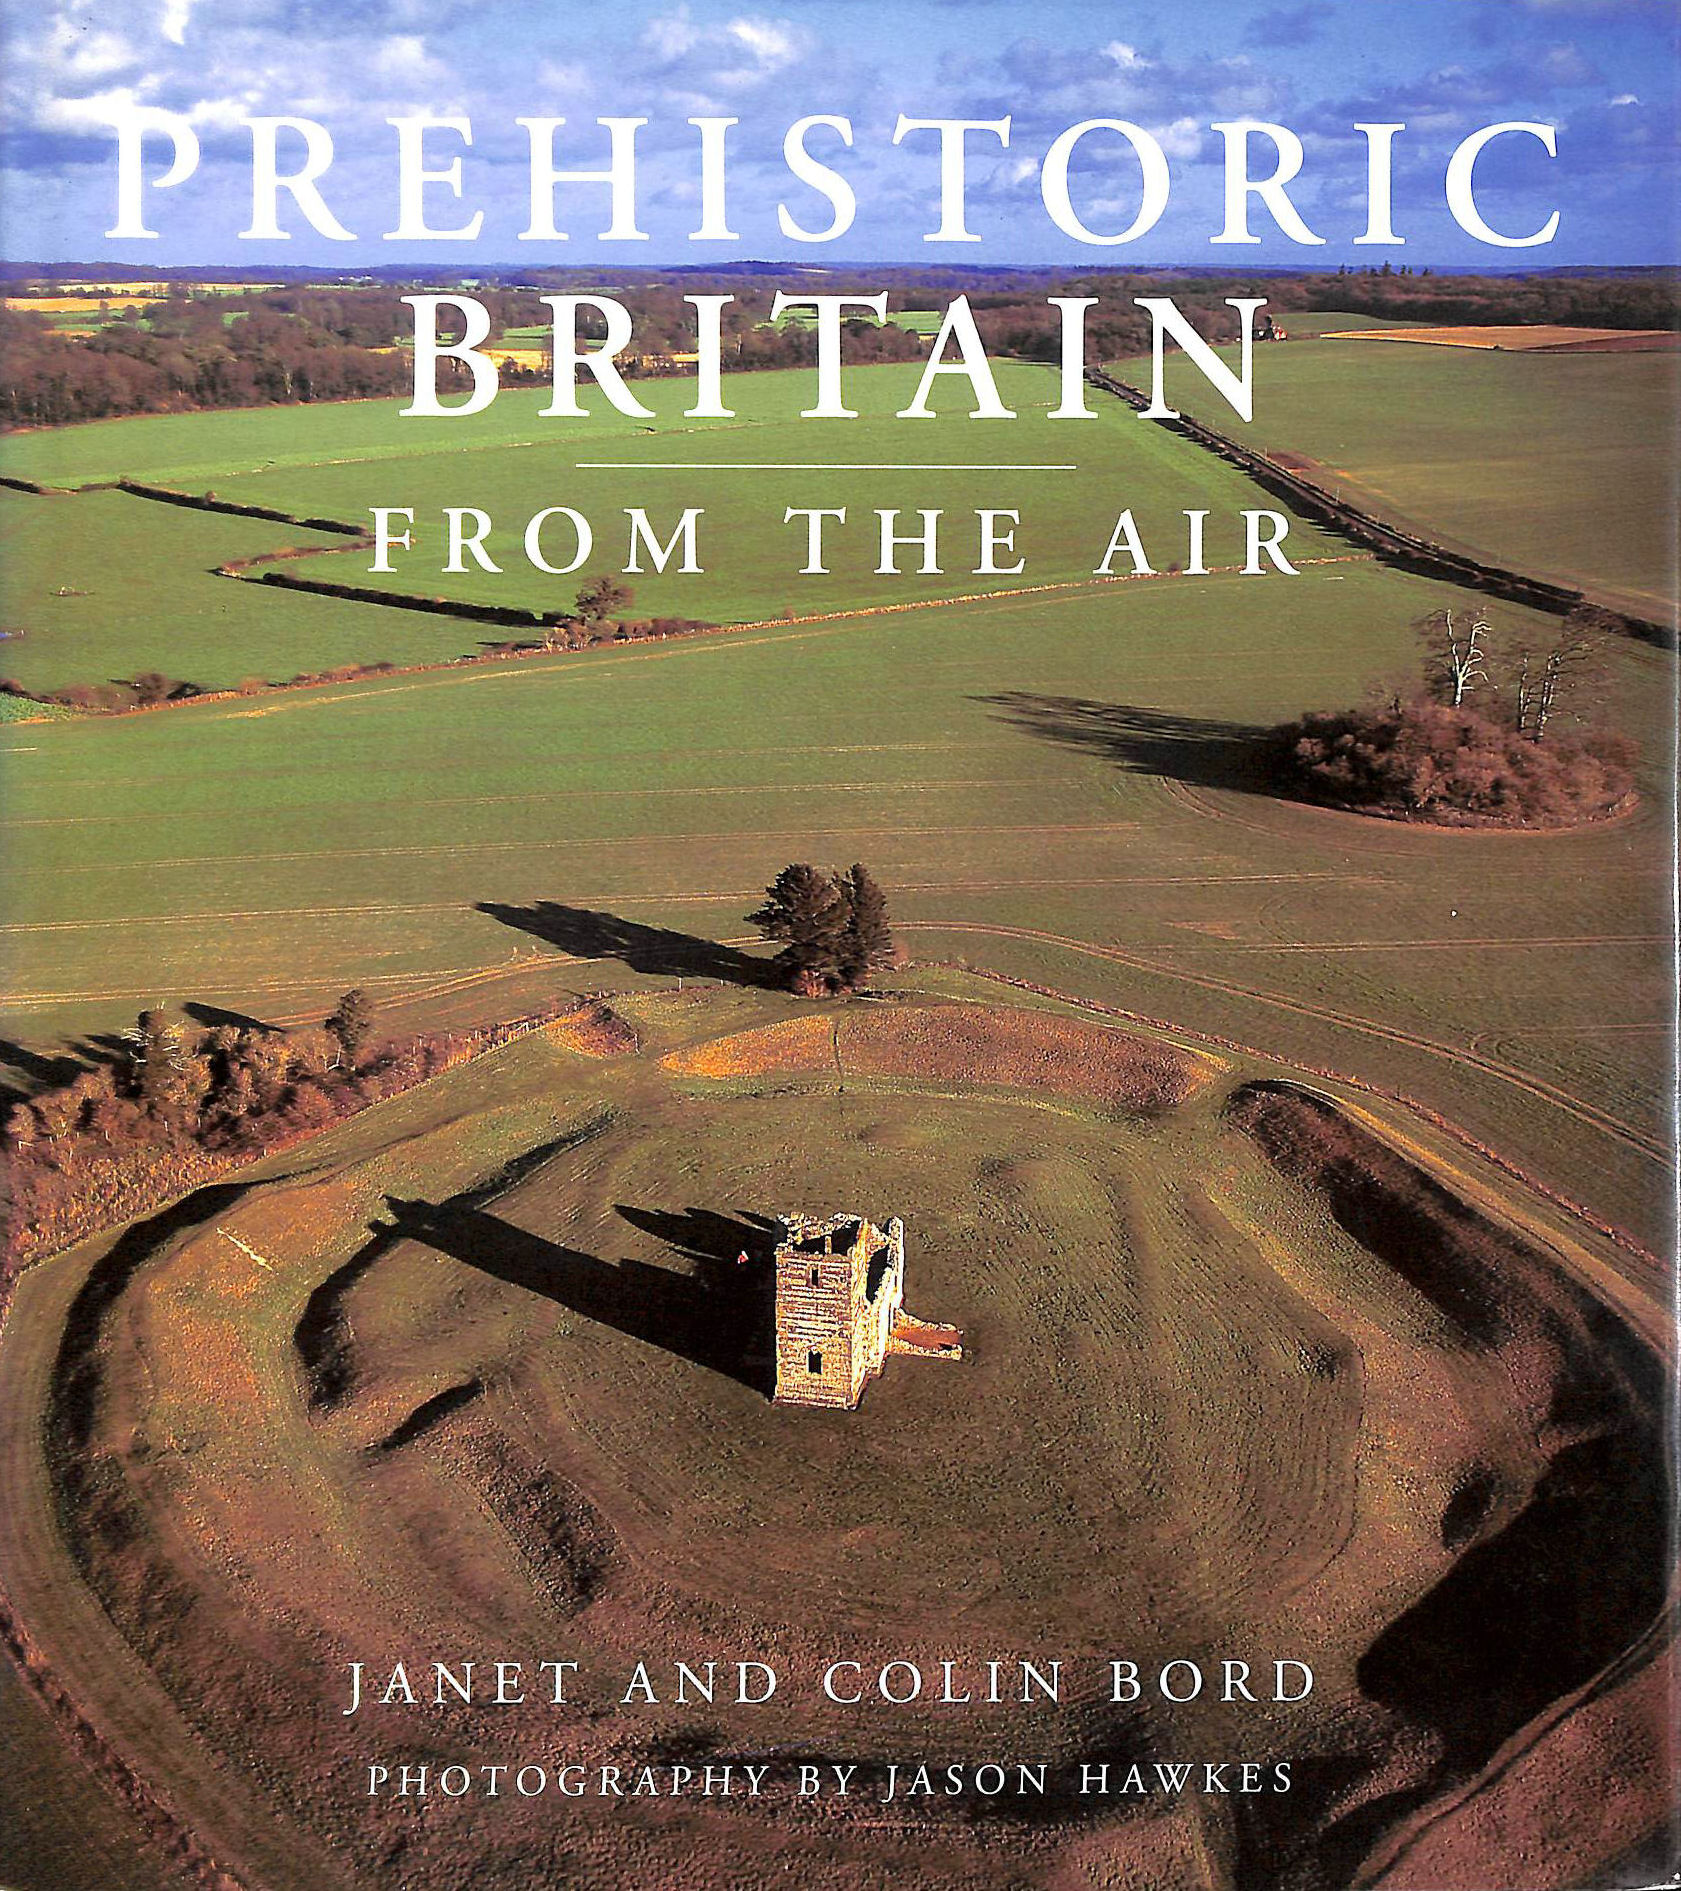 Image for Prehistoric Britain from the Air